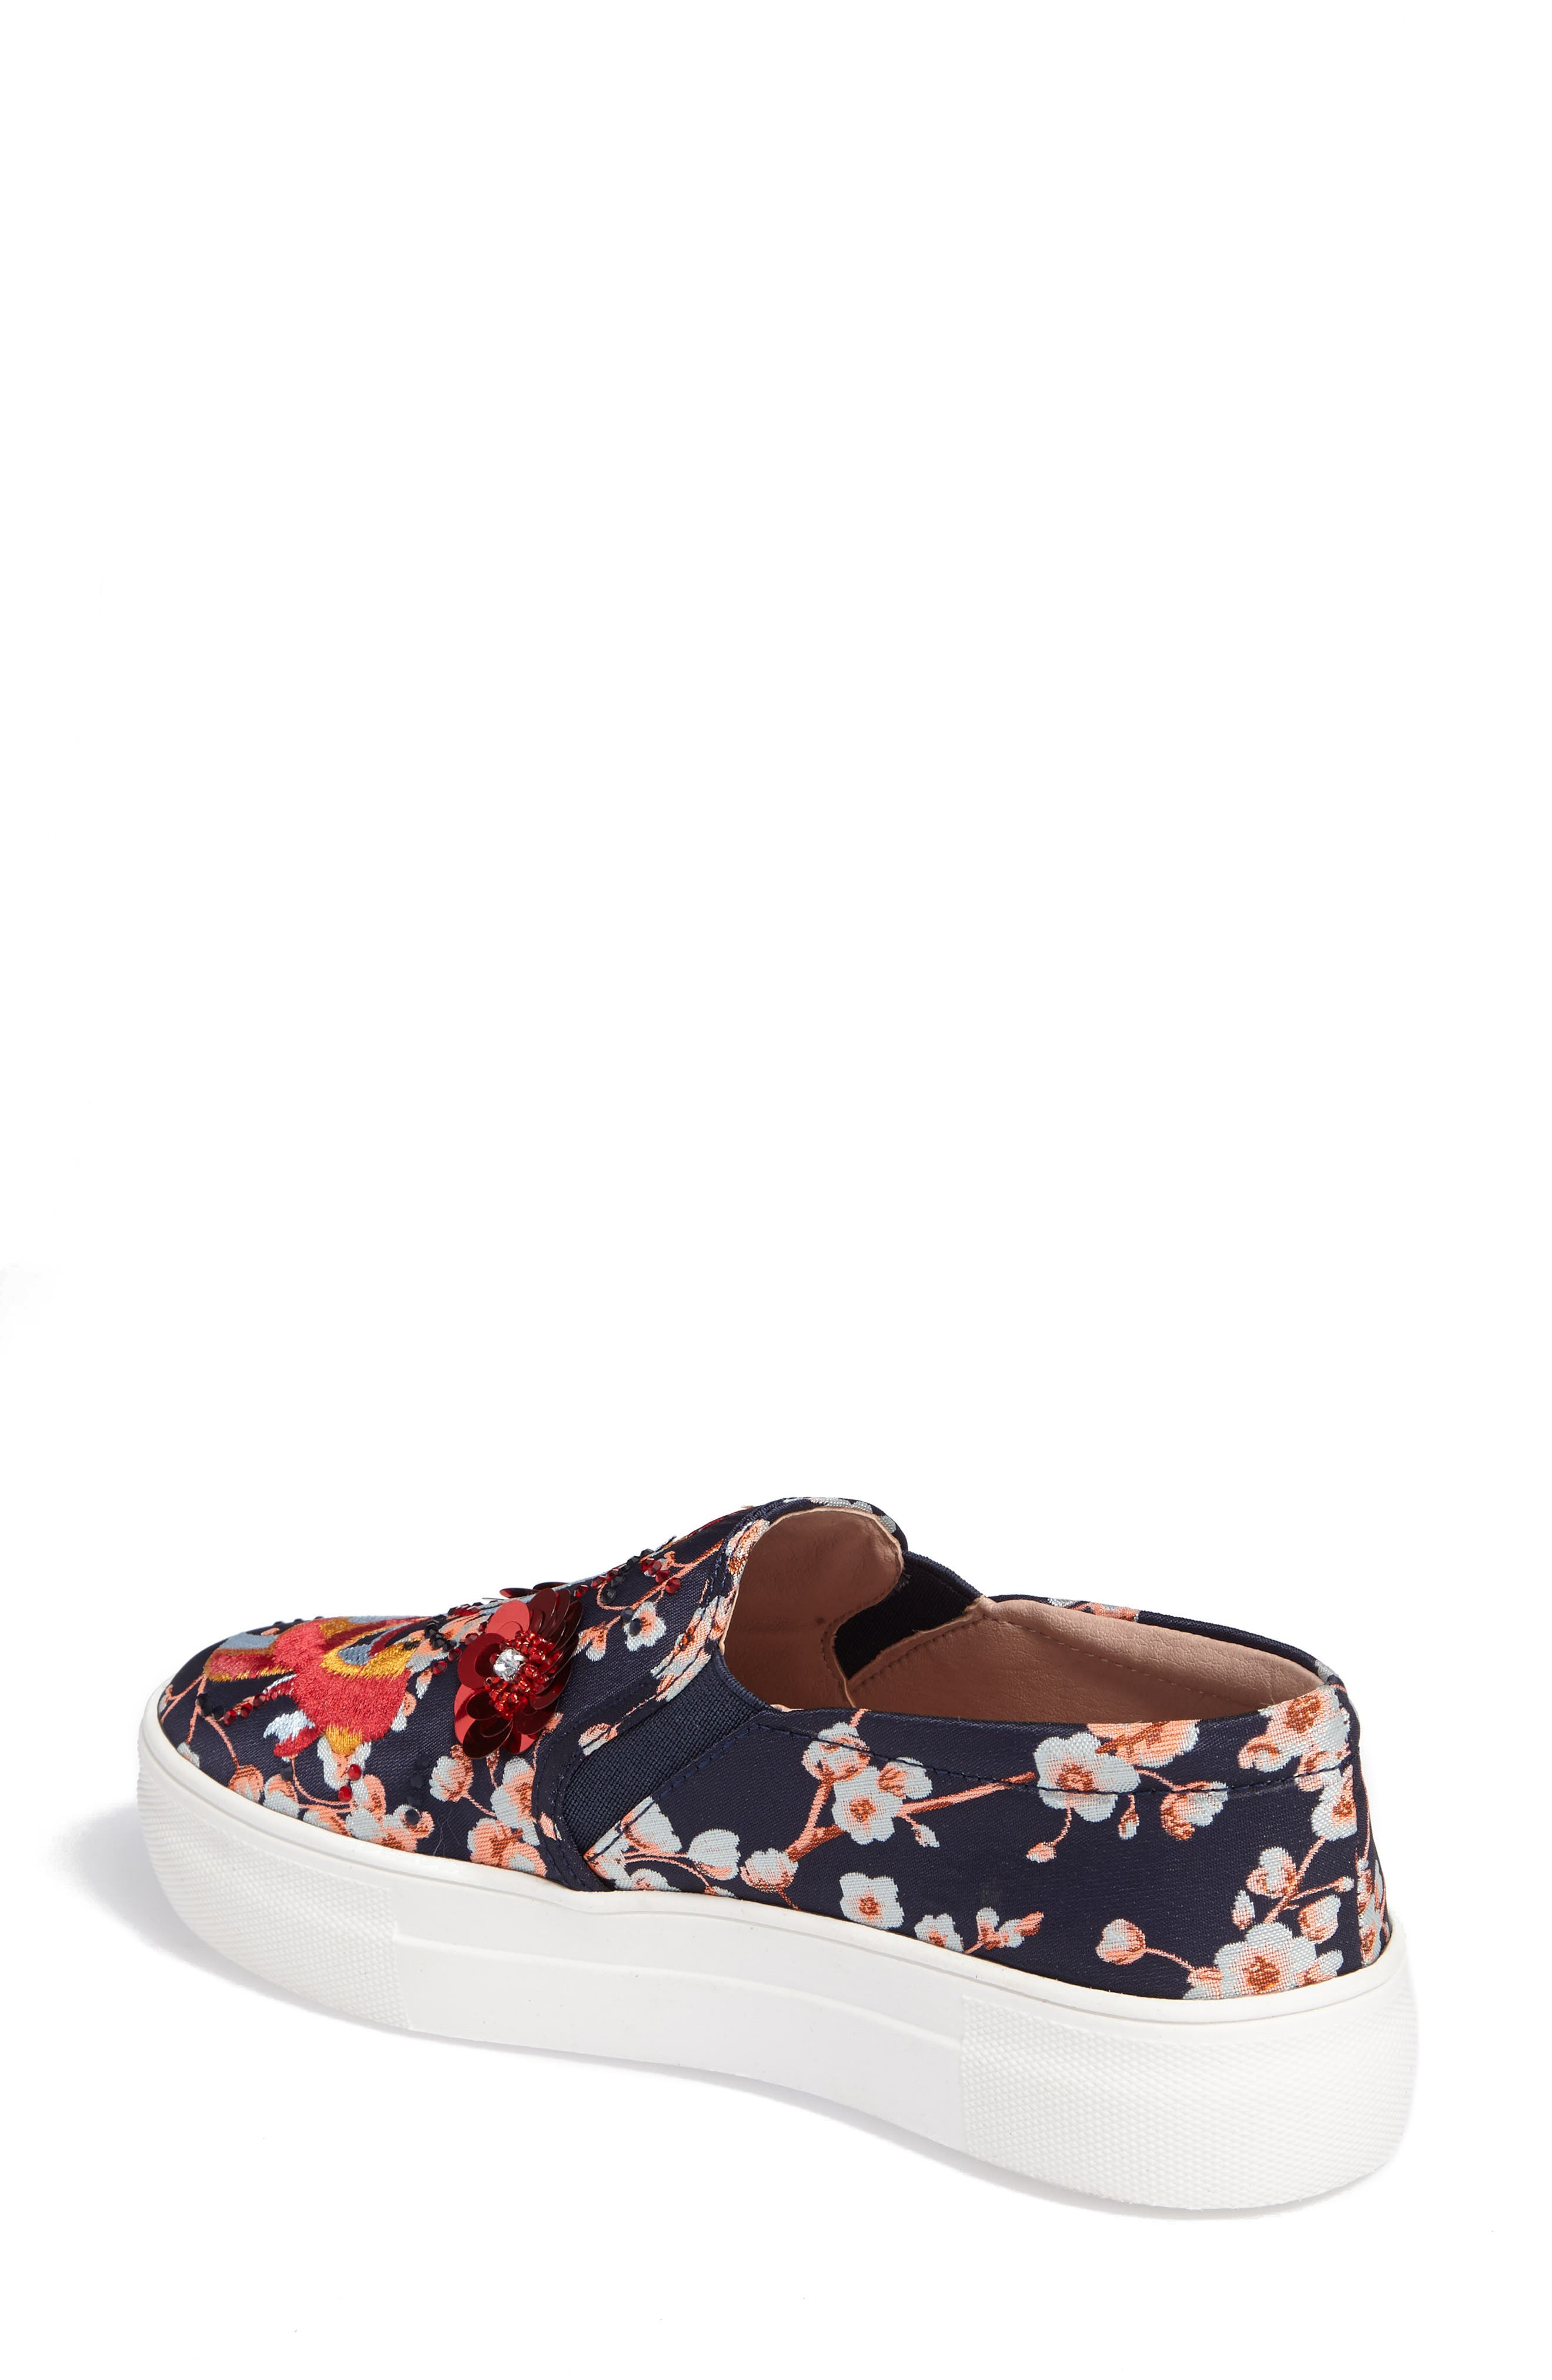 Theory Goldfish Embellished Slip-On Sneaker,                             Alternate thumbnail 2, color,                             001